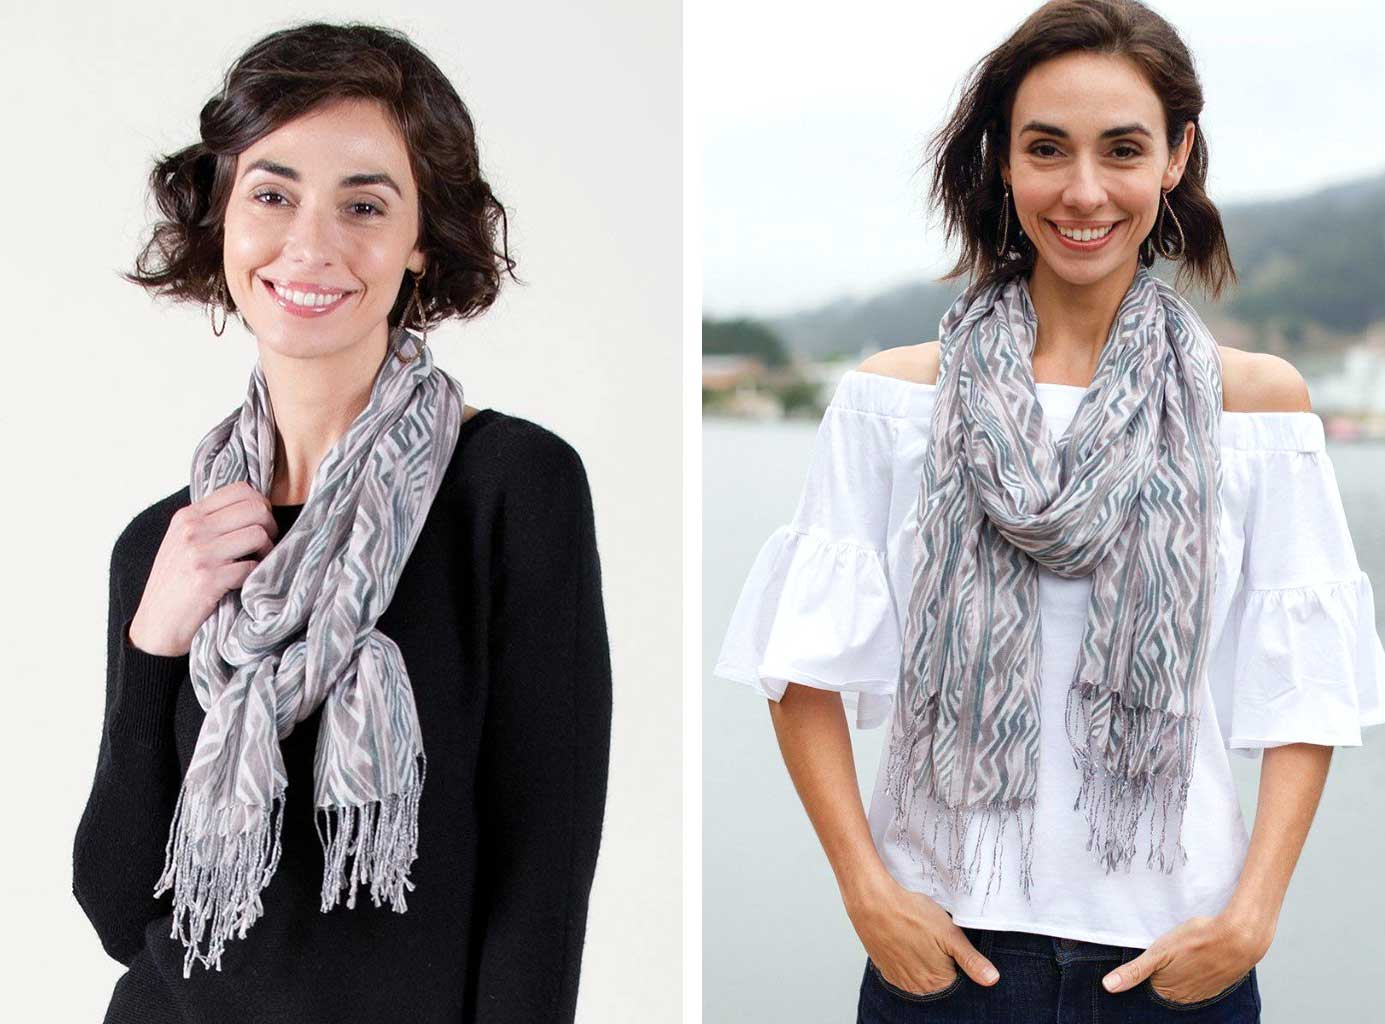 woman wearing same grey and lavender print scarf with a dark sweater on the left and a white summer shirt on the right